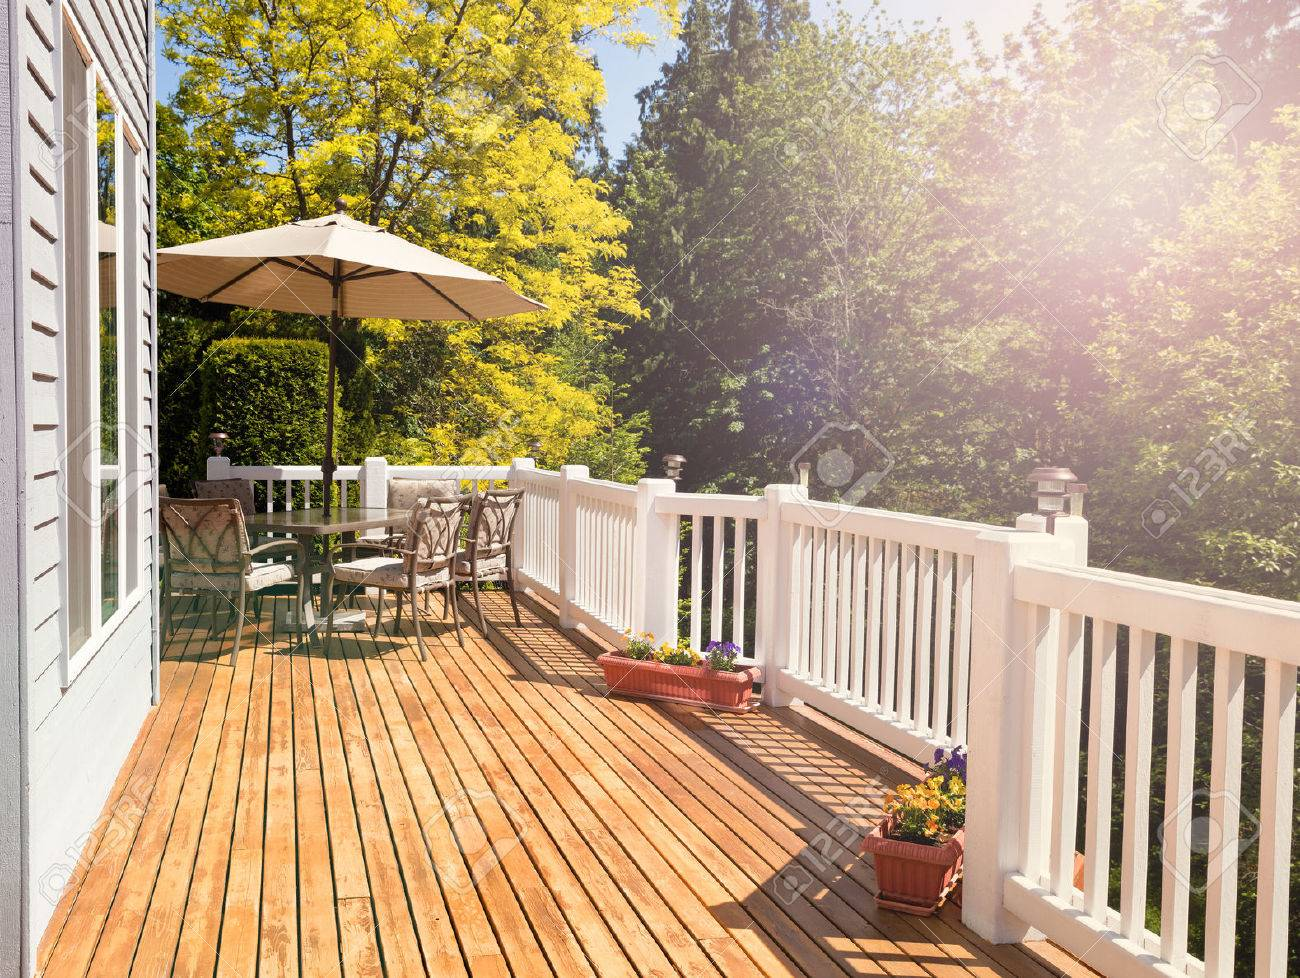 Afternoon bright daylight on outdoor home cedar deck with furniture and open umbrella. Light effect applied to image. Horizontal layout. - 56381768